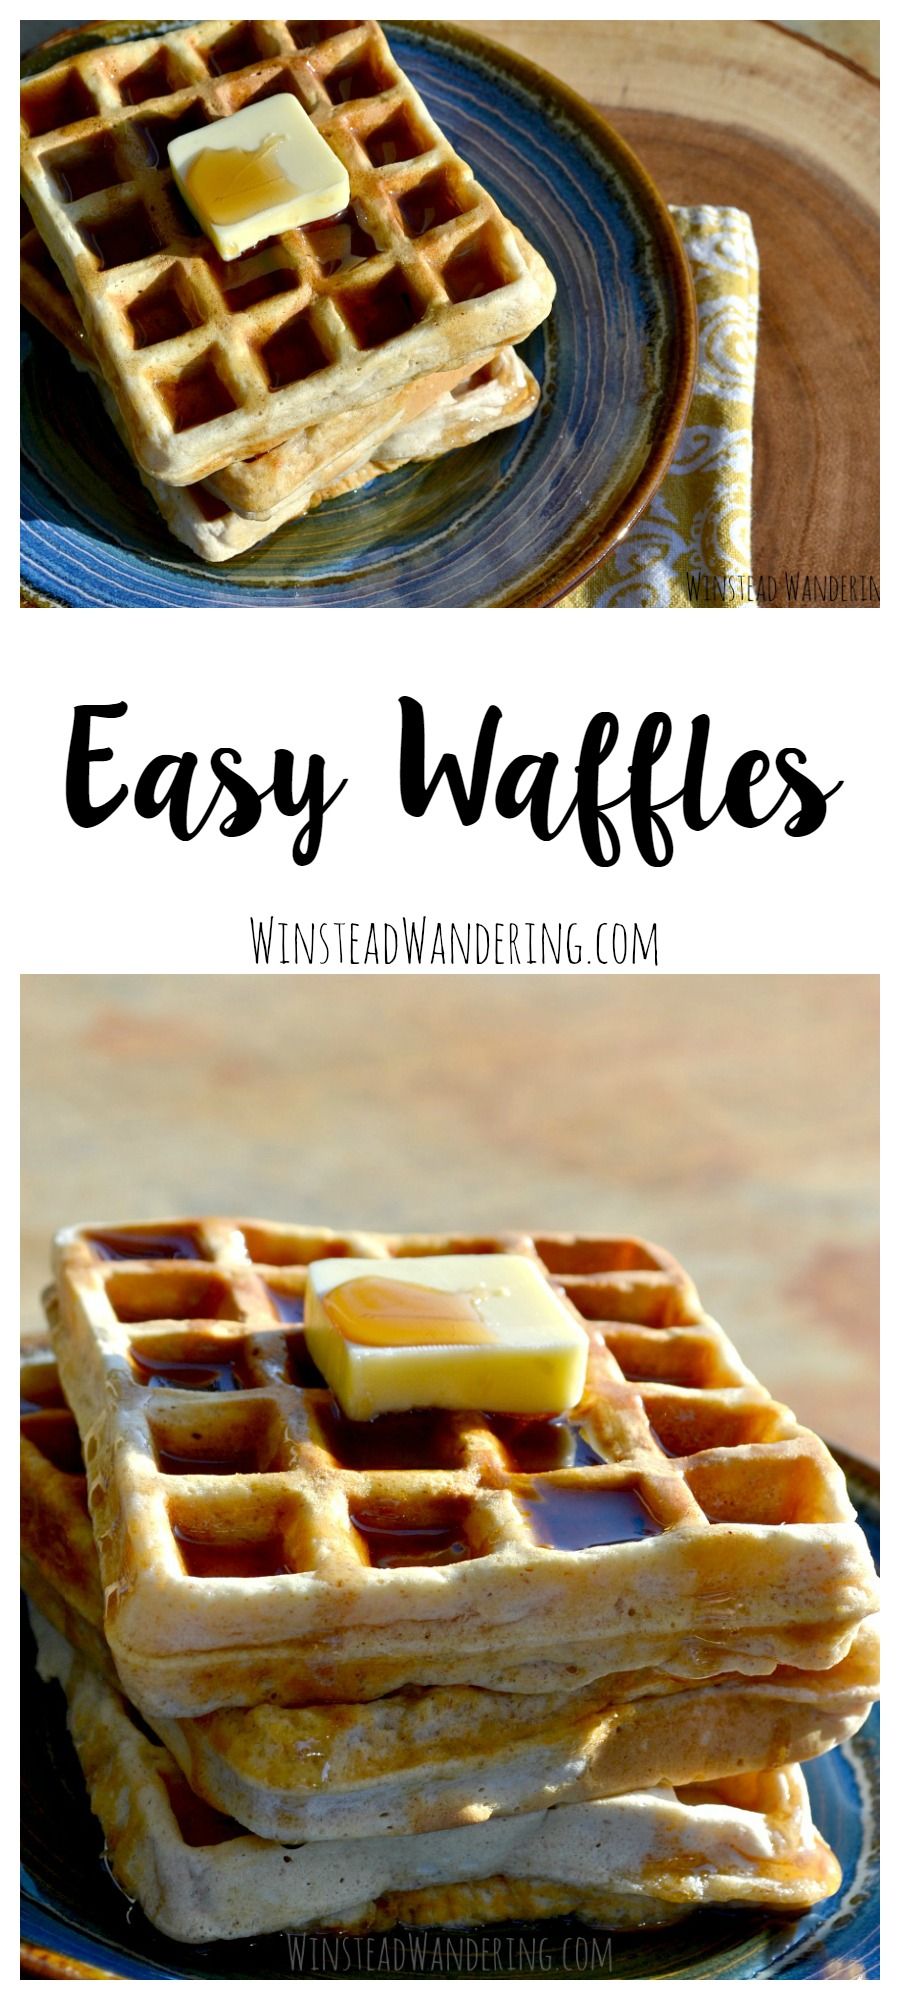 No obscure ingredients here- just a simple recipe for easy waffles that are fluffy, flavorful, and ready in a snap.